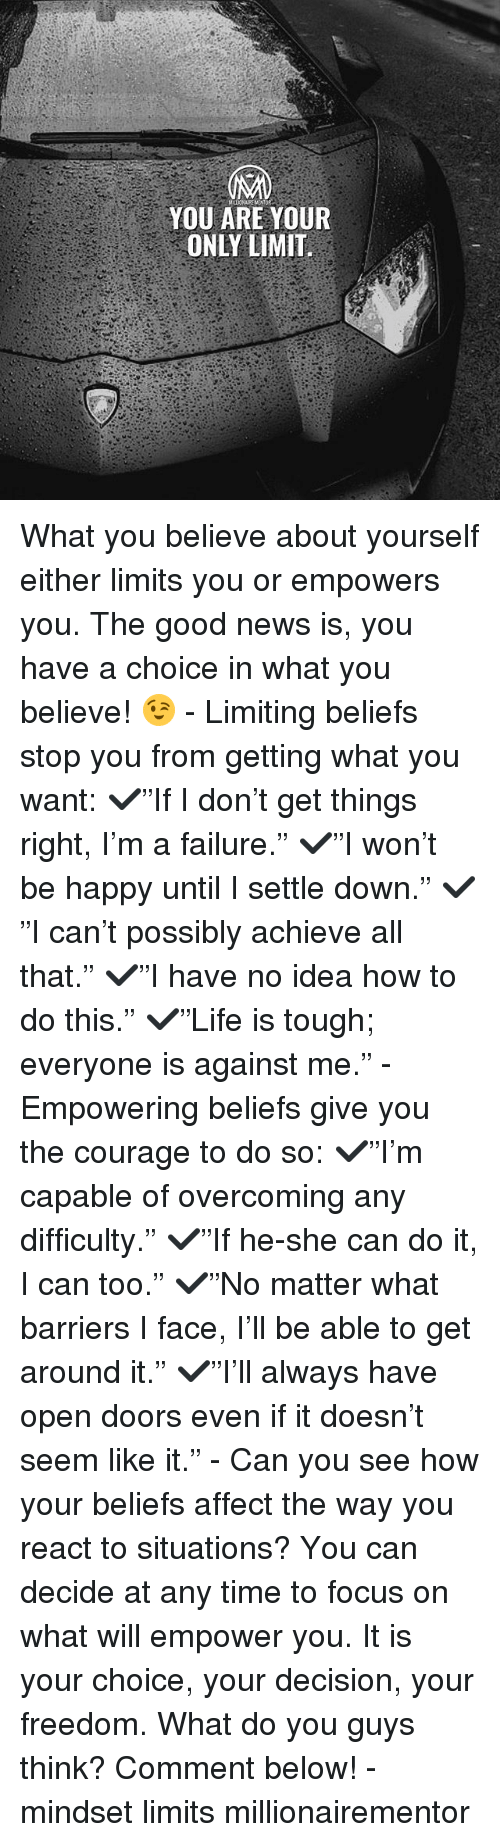 "Memes, News, and Affect: YOU ARE YOUR  ONLY LIMIT. What you believe about yourself either limits you or empowers you. The good news is, you have a choice in what you believe! 😉 - Limiting beliefs stop you from getting what you want: ✔️""If I don't get things right, I'm a failure."" ✔️""I won't be happy until I settle down."" ✔️""I can't possibly achieve all that."" ✔️""I have no idea how to do this."" ✔️""Life is tough; everyone is against me."" - Empowering beliefs give you the courage to do so: ✔️""I'm capable of overcoming any difficulty."" ✔️""If he-she can do it, I can too."" ✔️""No matter what barriers I face, I'll be able to get around it."" ✔️""I'll always have open doors even if it doesn't seem like it."" - Can you see how your beliefs affect the way you react to situations? You can decide at any time to focus on what will empower you. It is your choice, your decision, your freedom. What do you guys think? Comment below! - mindset limits millionairementor"